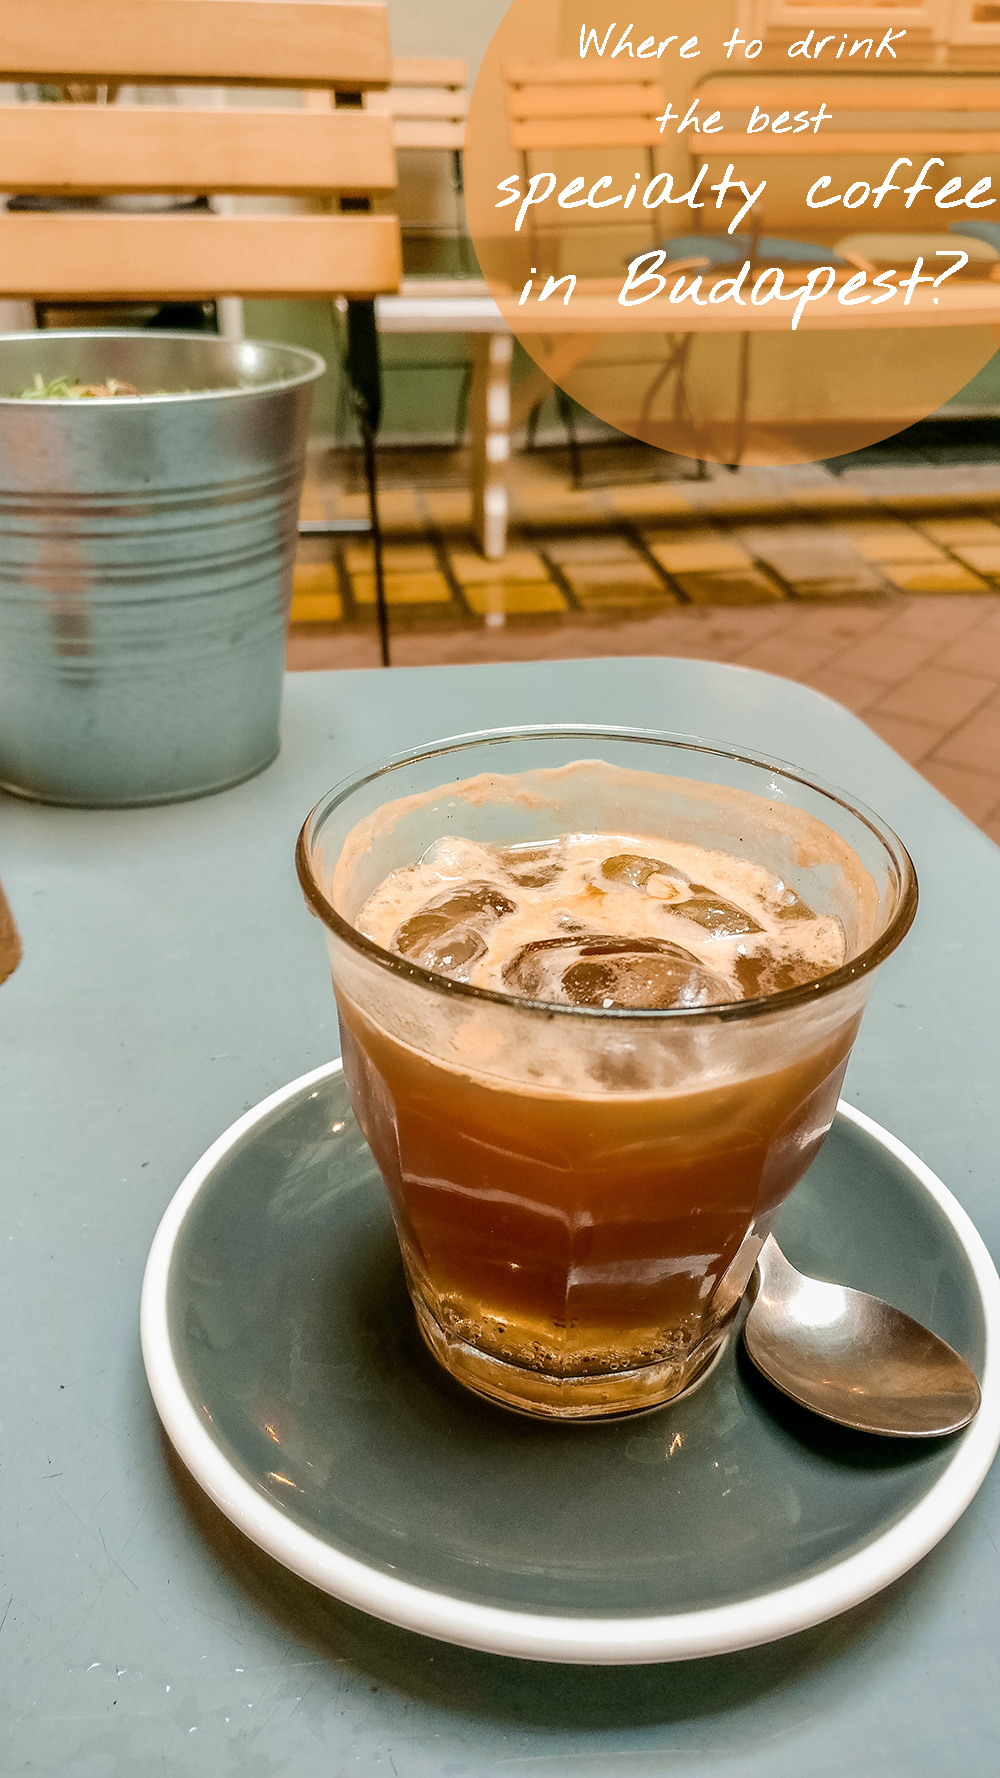 Where to drink the best specialty coffee in Budapest, Hungary? | Aliz's Wonderland